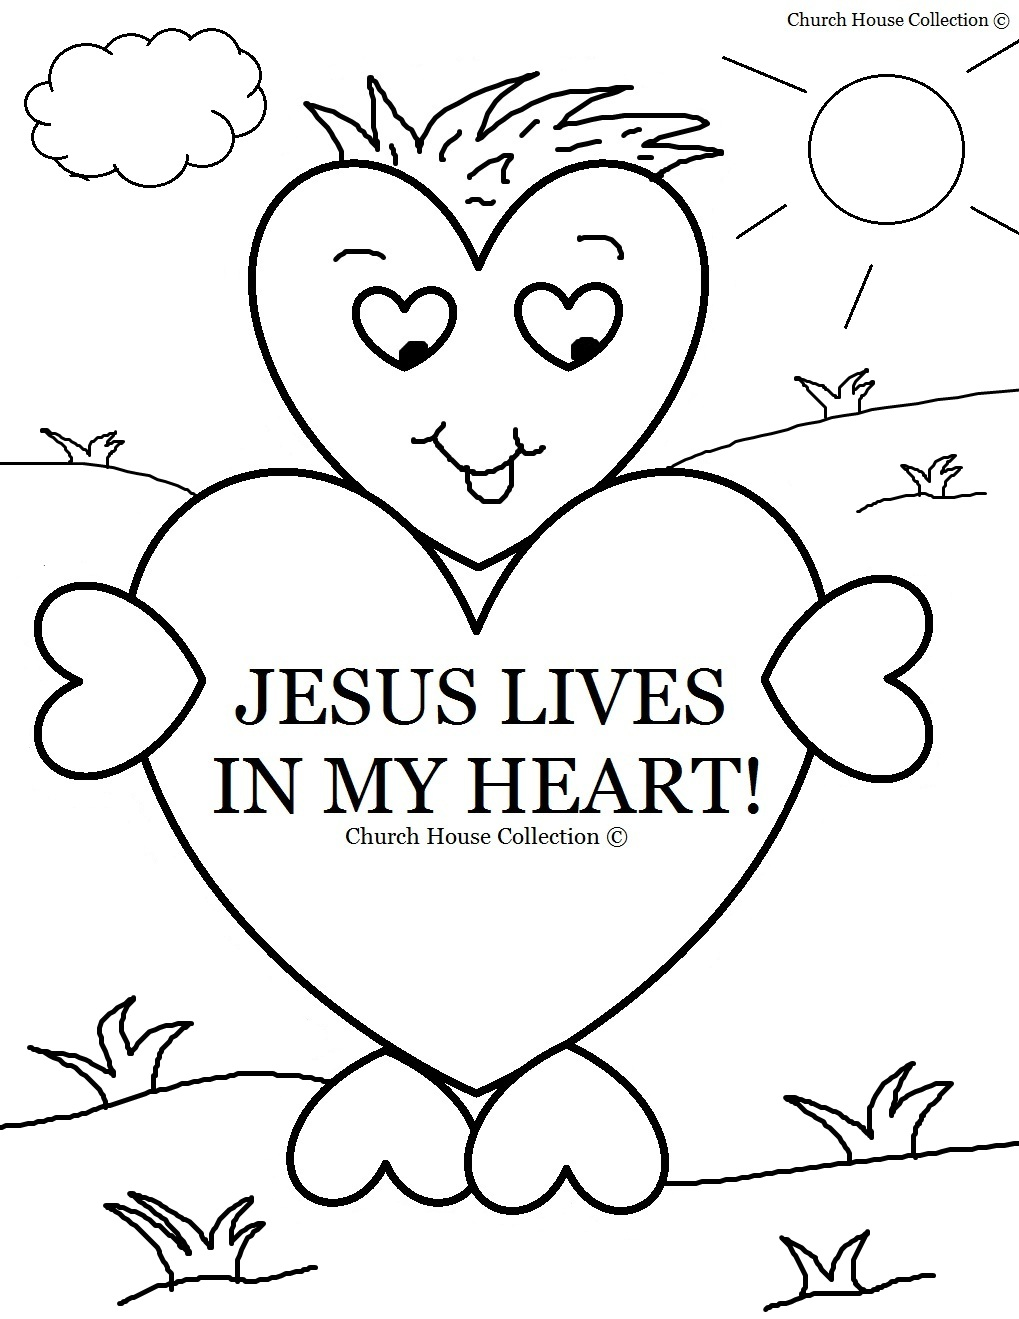 Church House Collection Blog: Valentine's Day Heart Card